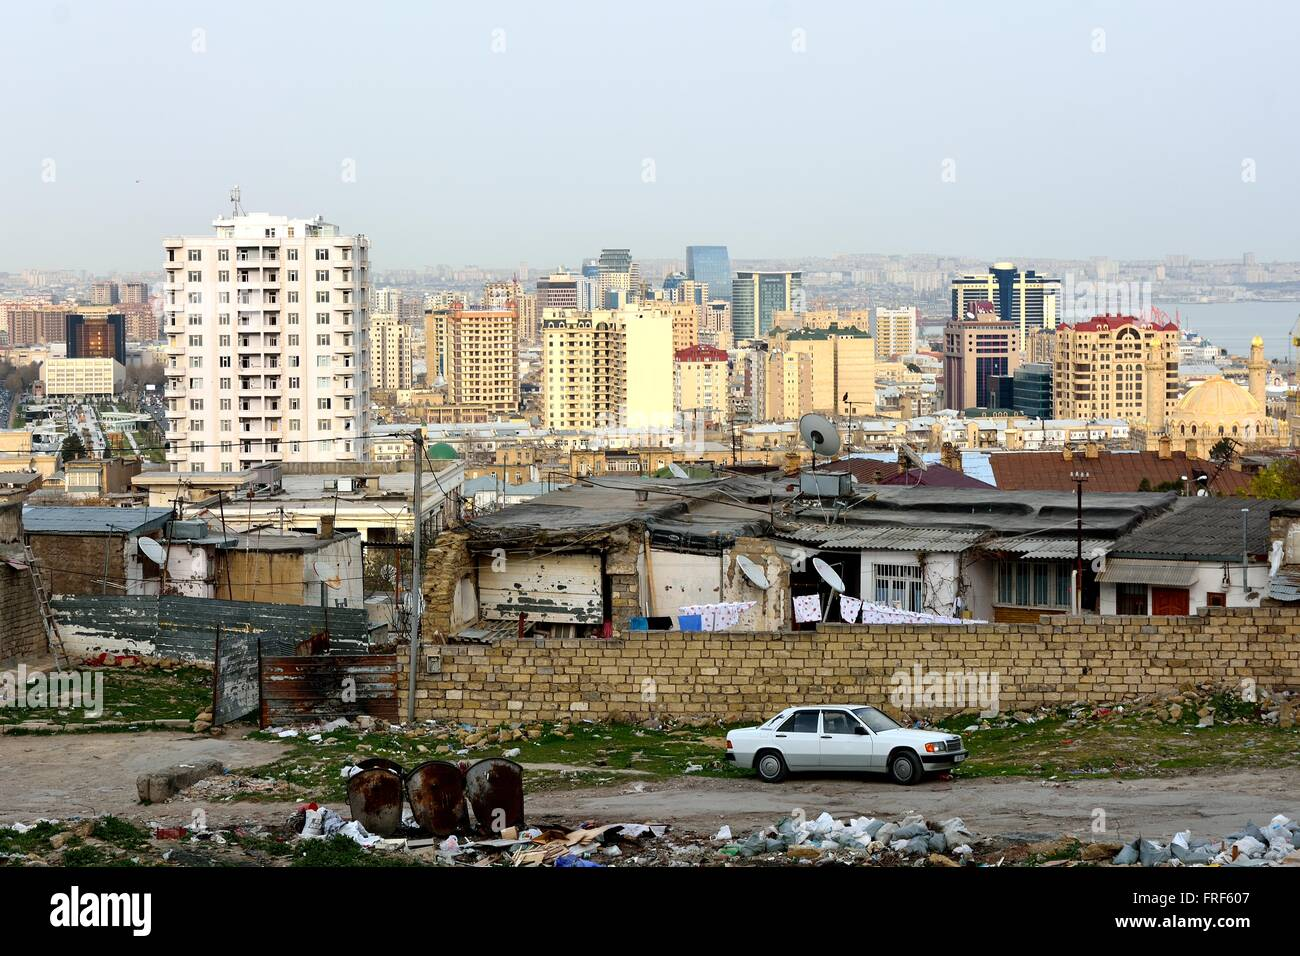 View of a scruffy area of Baku, capital city of Azerbaijan. A section in the north of Baku, showing unmodernized - Stock Image